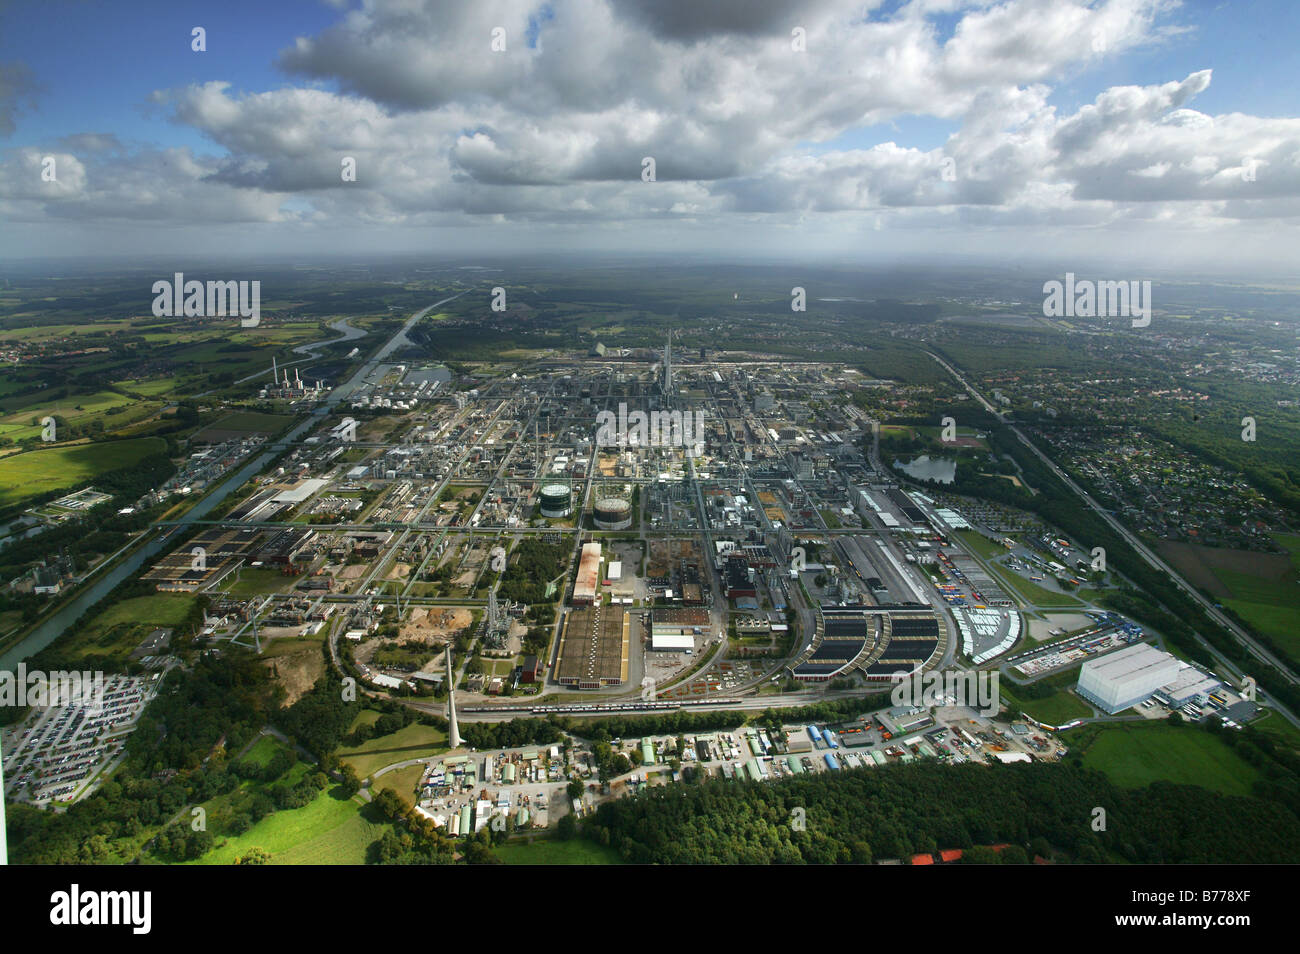 Aerial photograph, Degussa, EVONIK, chemical works, Chemiepark Marl, power stations, clouds, Ruhr Area, North Rhine - Stock Image